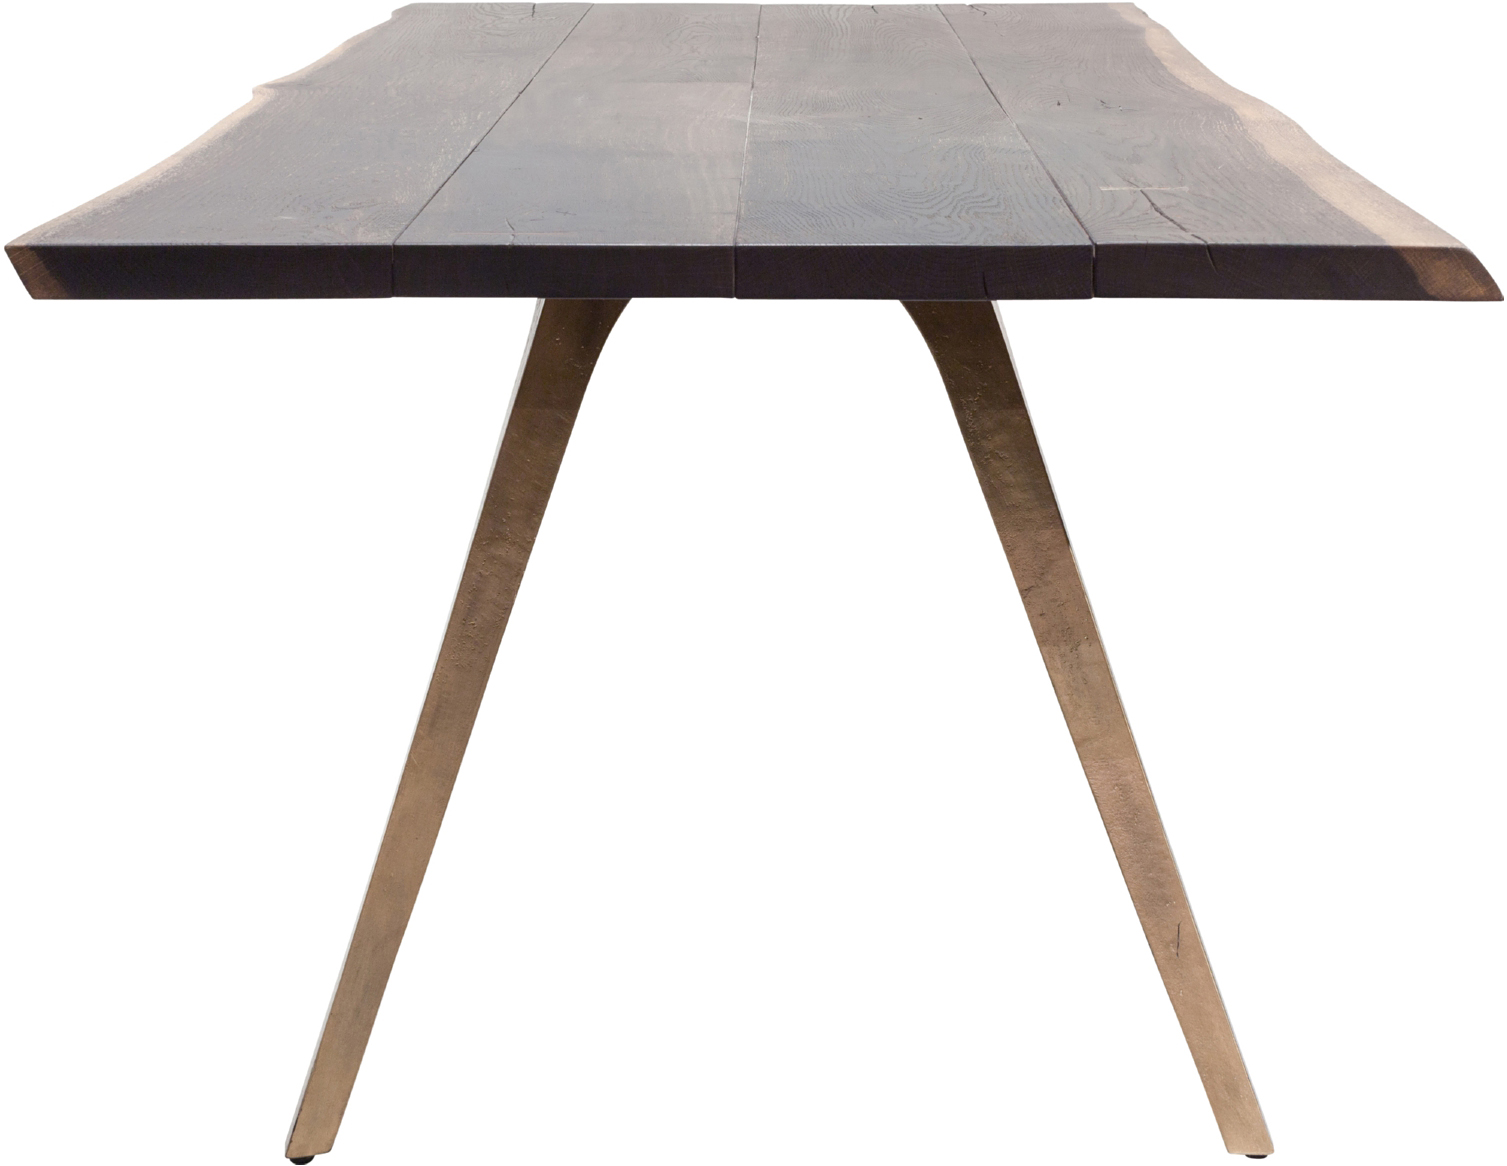 the nuevo vega dining table in bronze